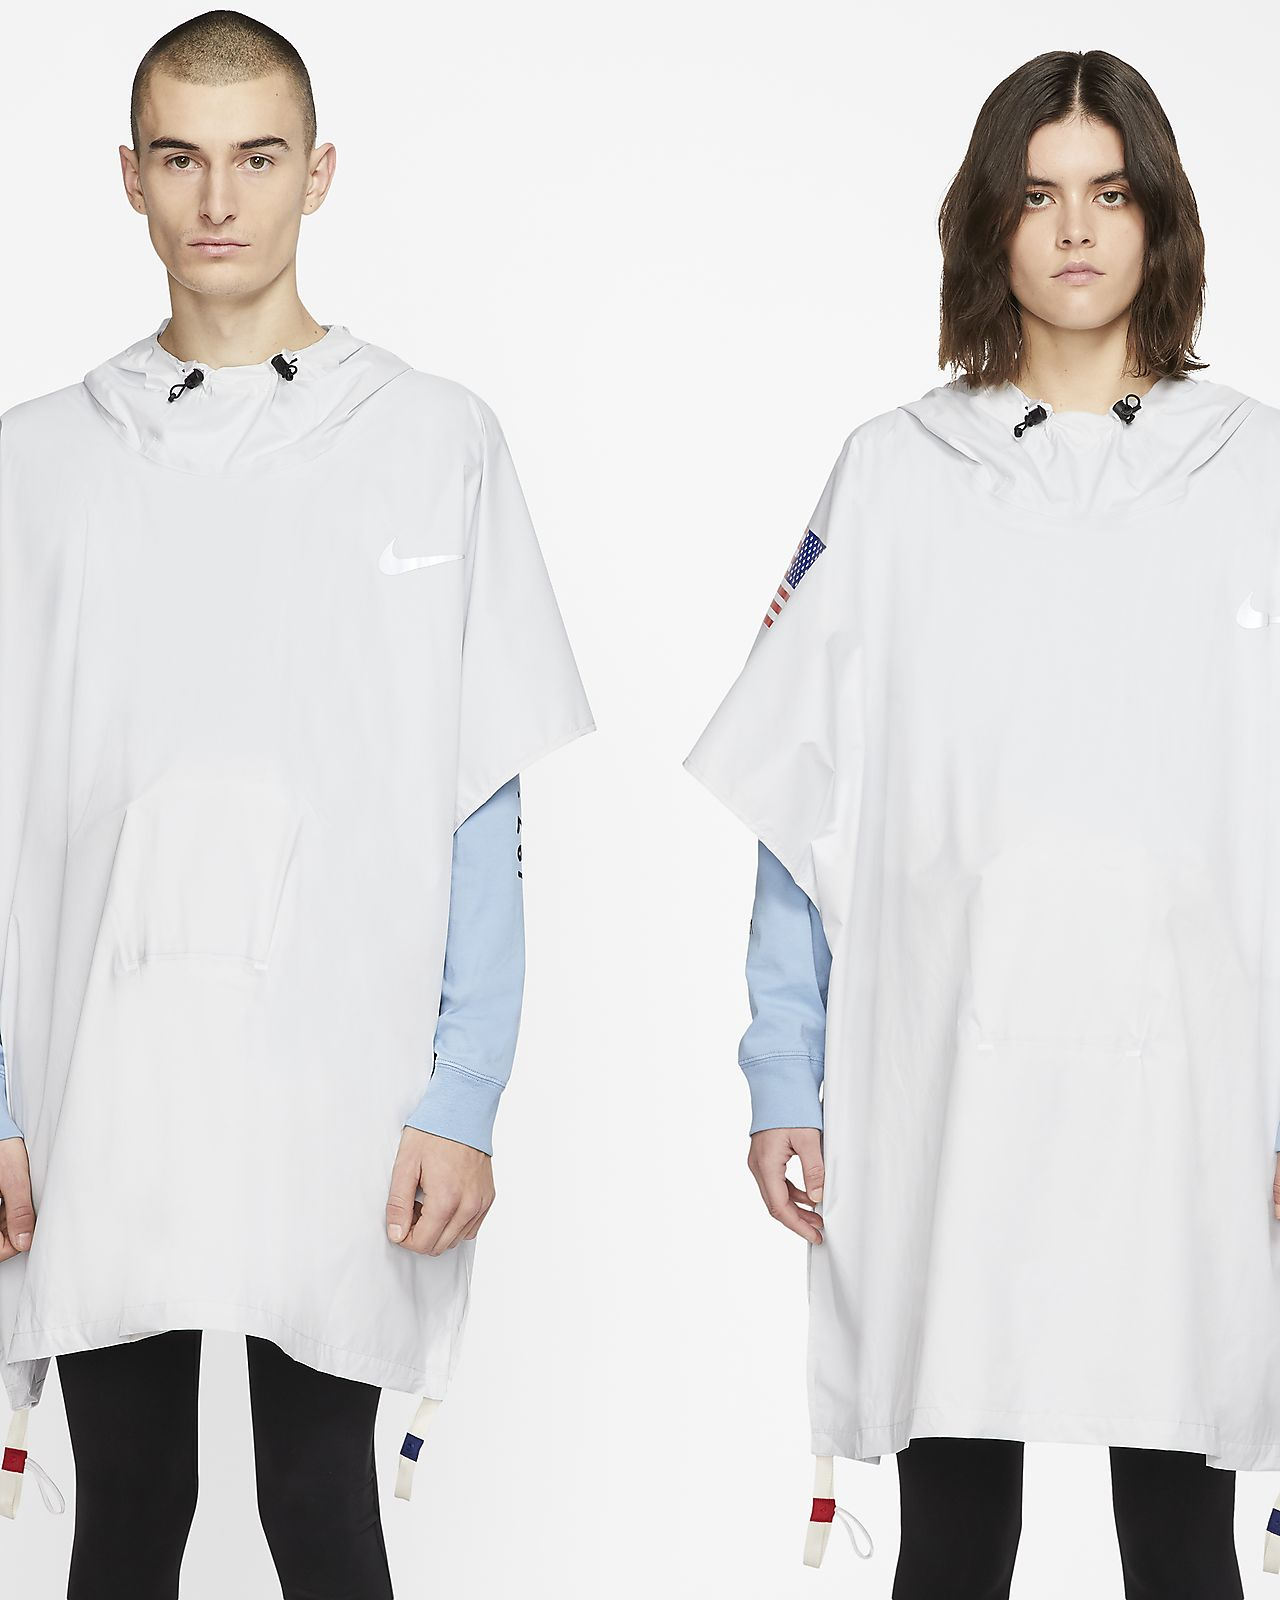 Nike x Tom Sachs Packable Poncho